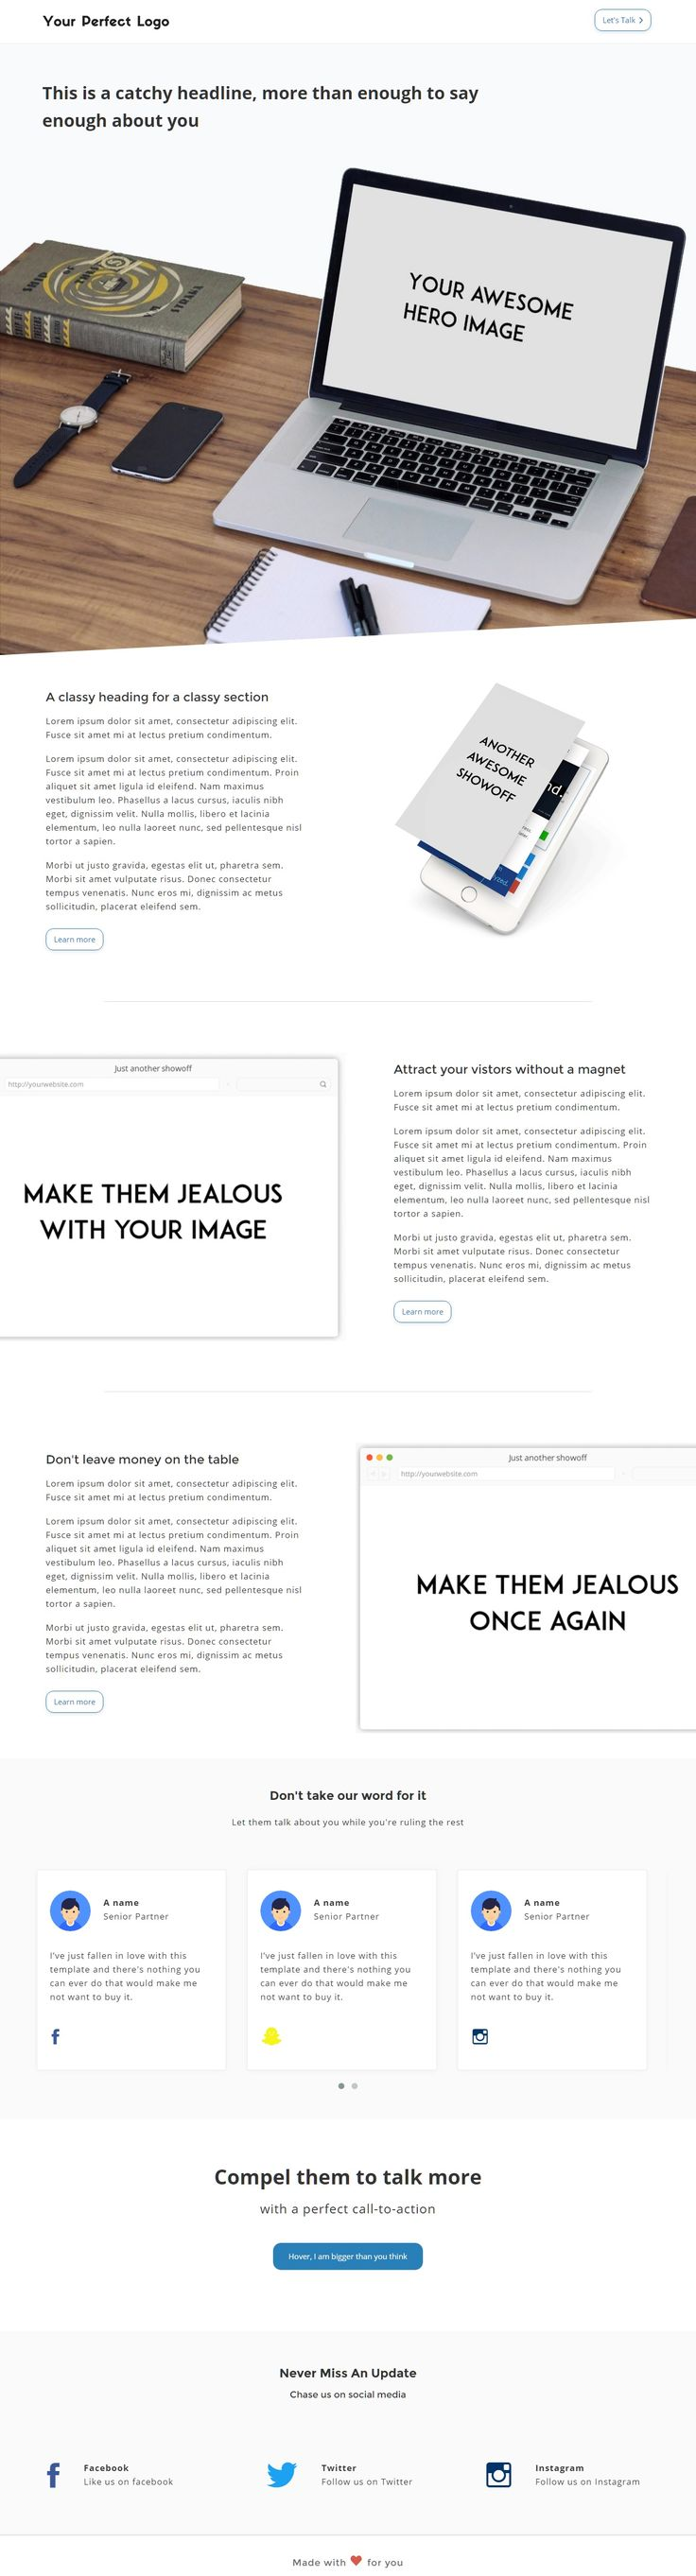 This responsive About Us template fulfills everything you